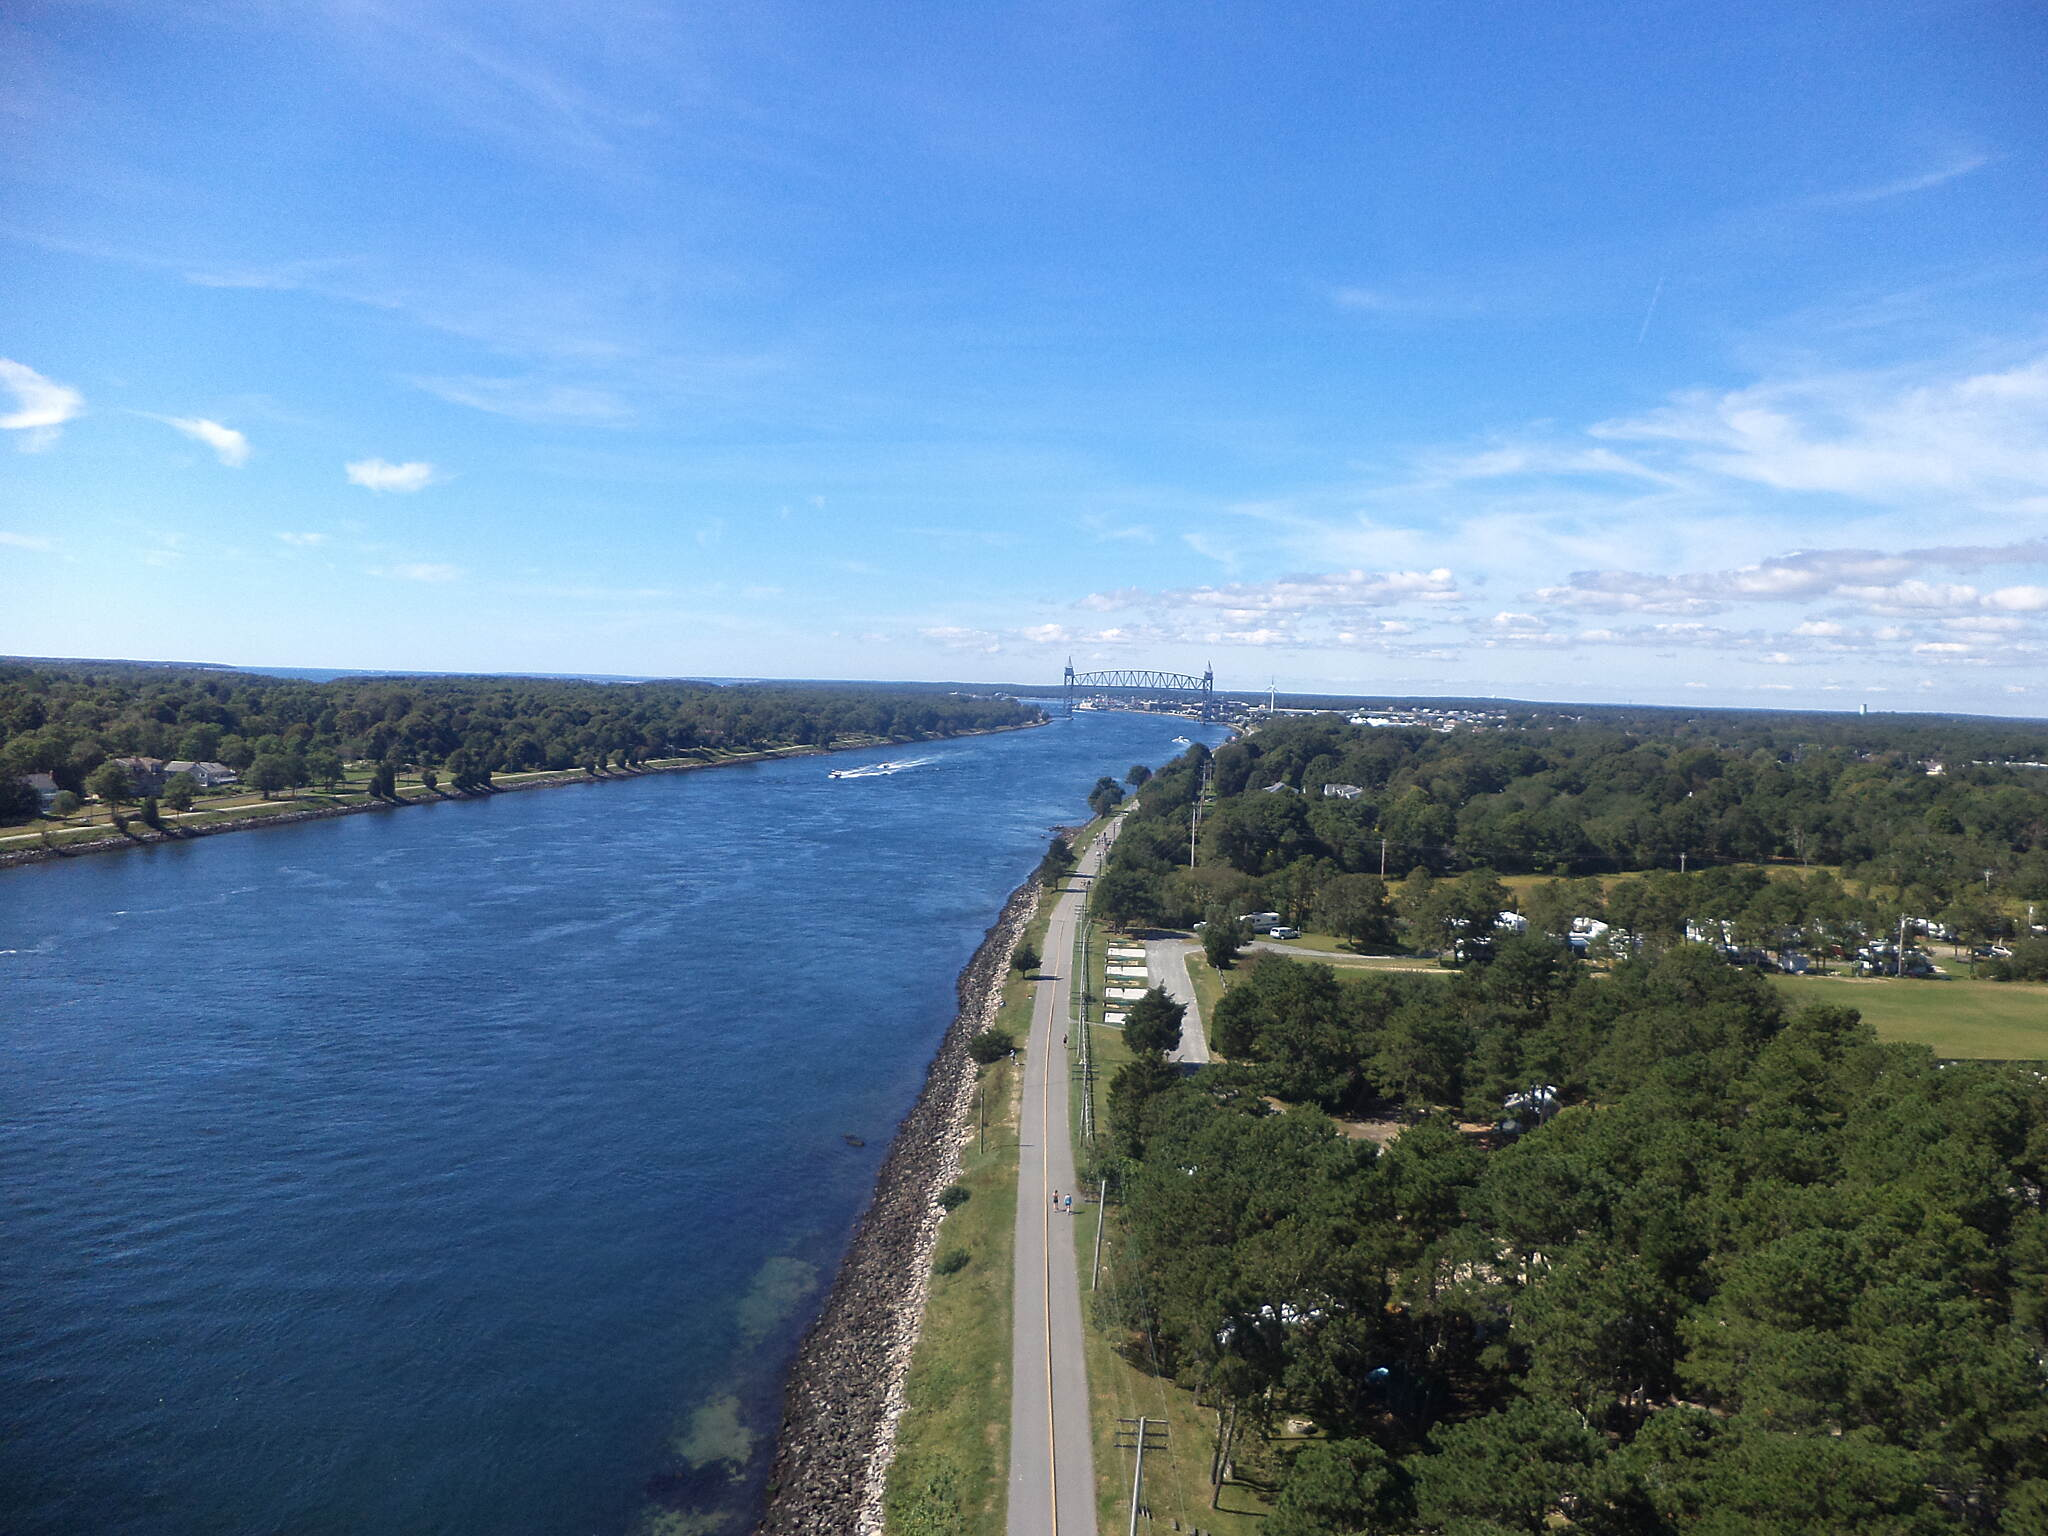 Cape Cod Canal Bikeway Cape Cod Canal  Taken from the apex of the Bourne Bridge.